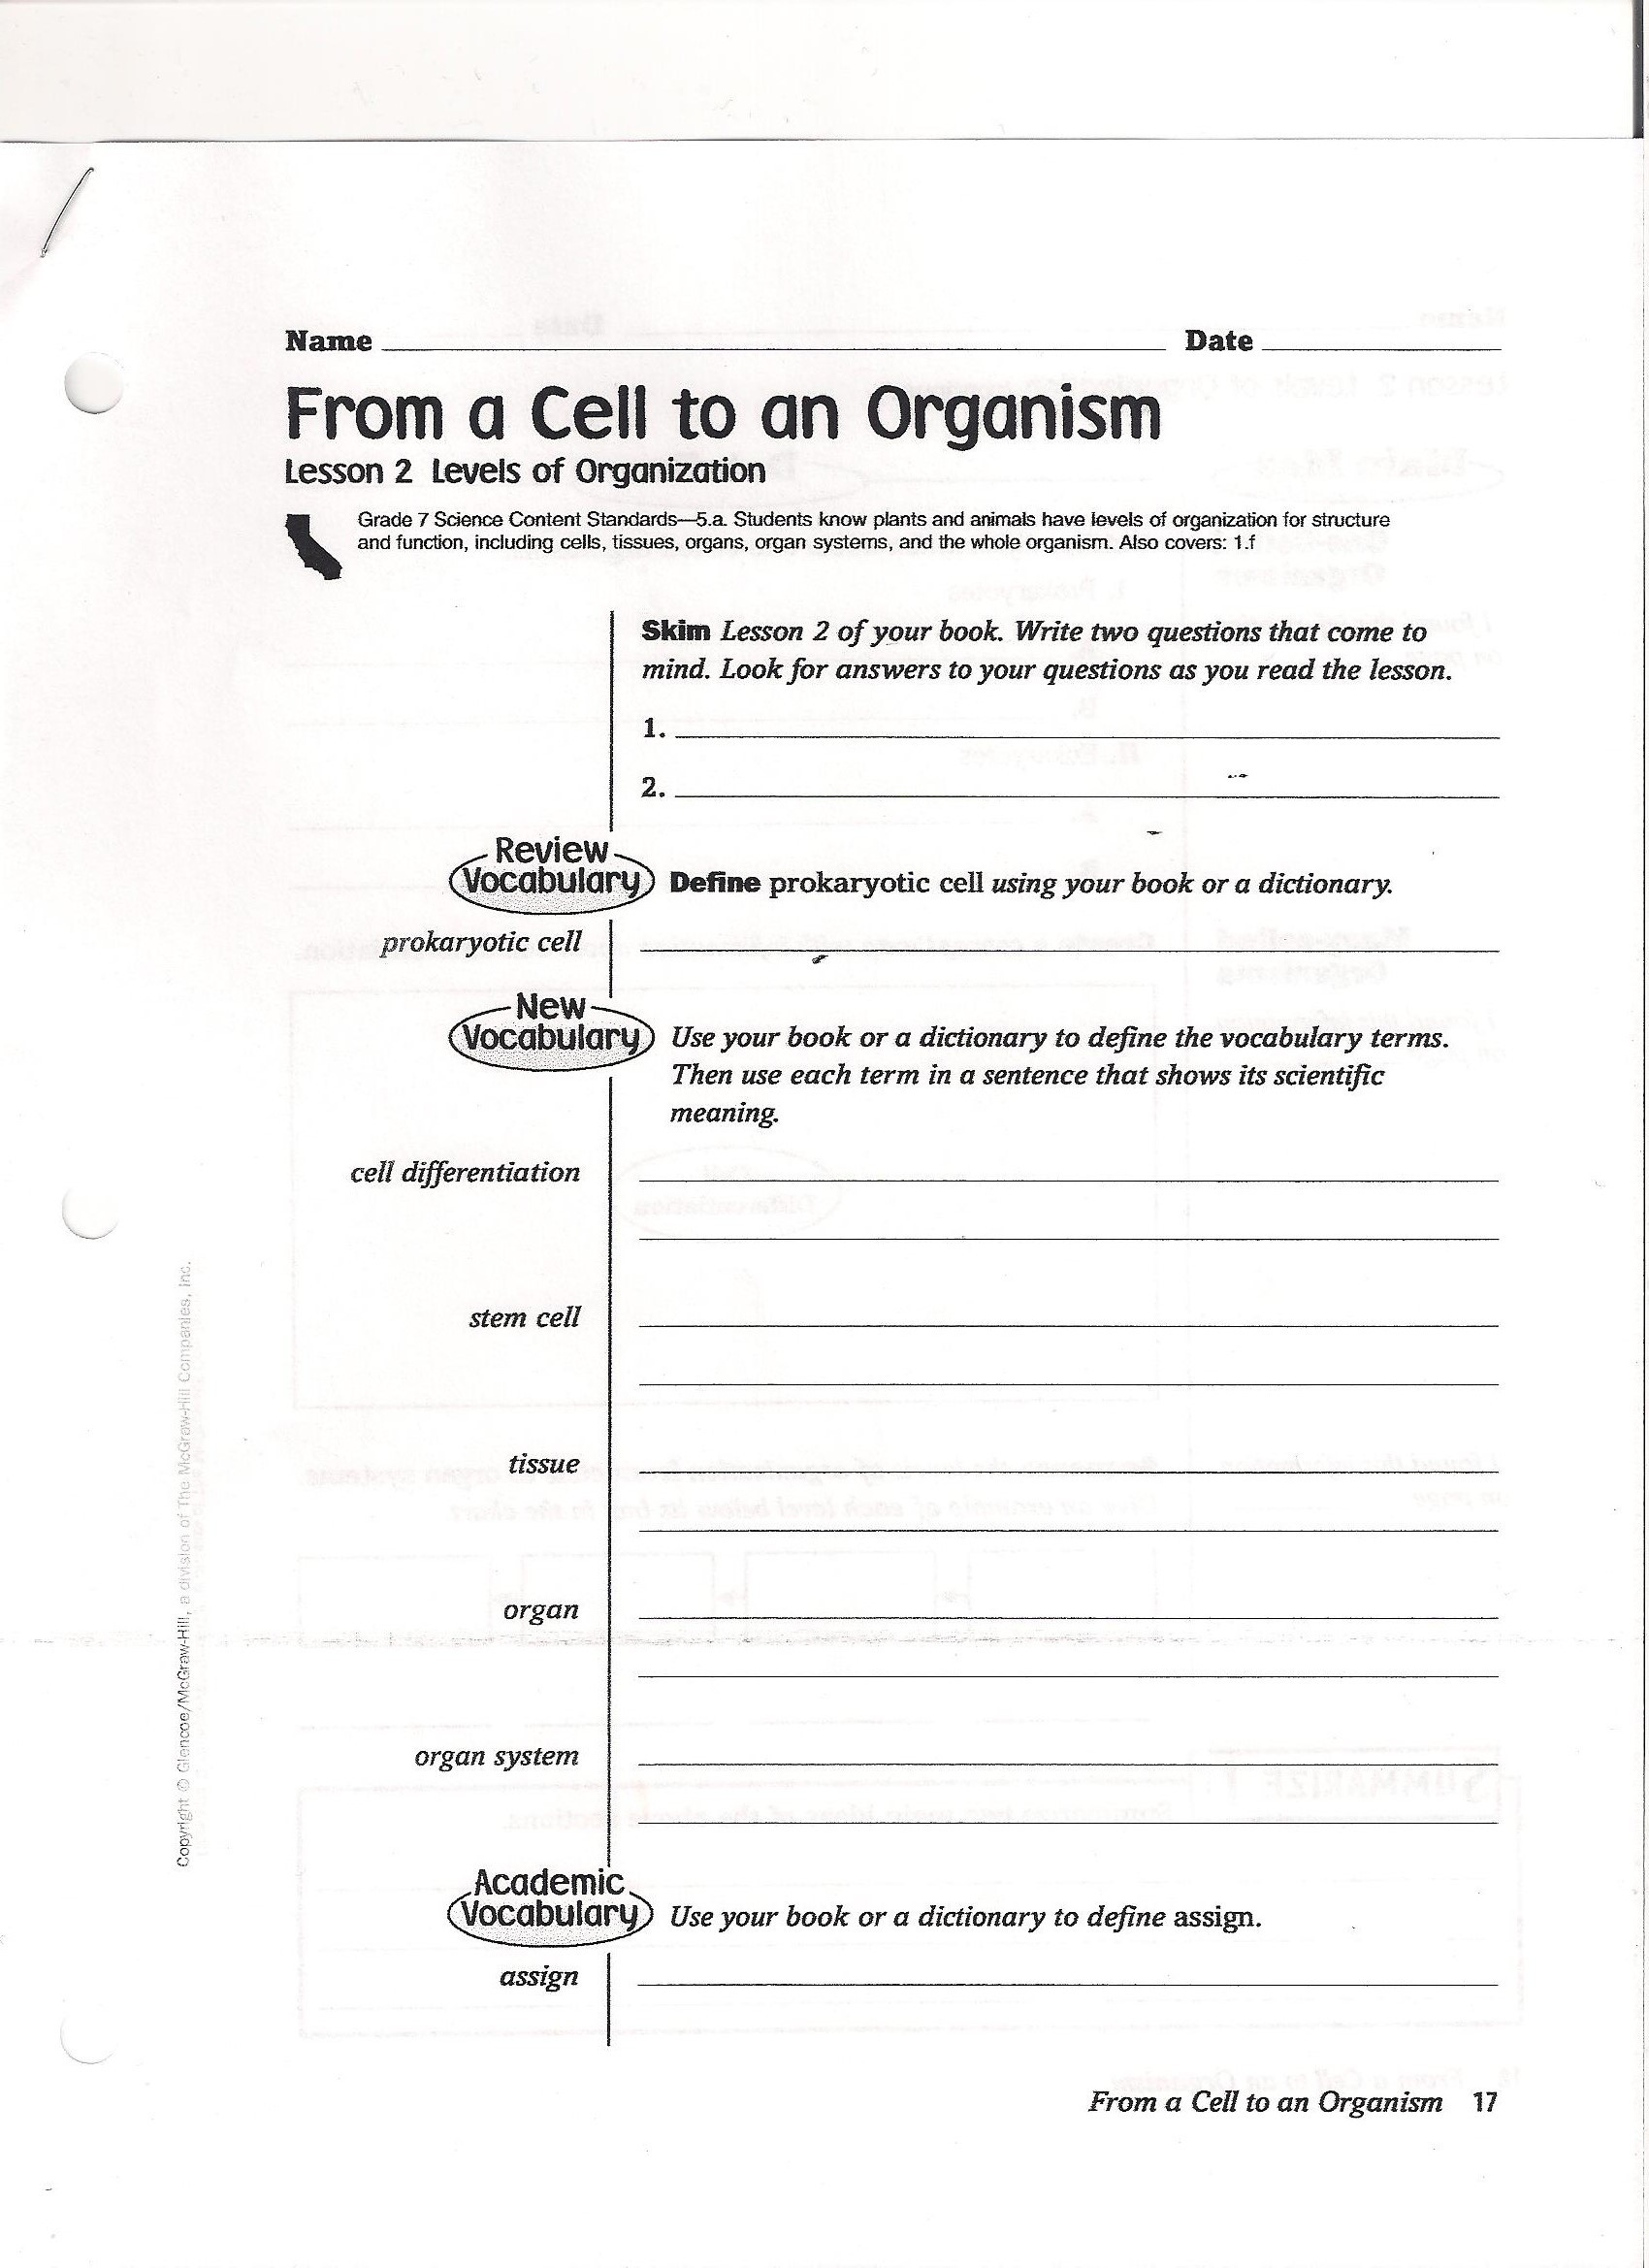 Science Worksheets 7th Grade Unique is Life Science Worksheet Educational 7th Grade